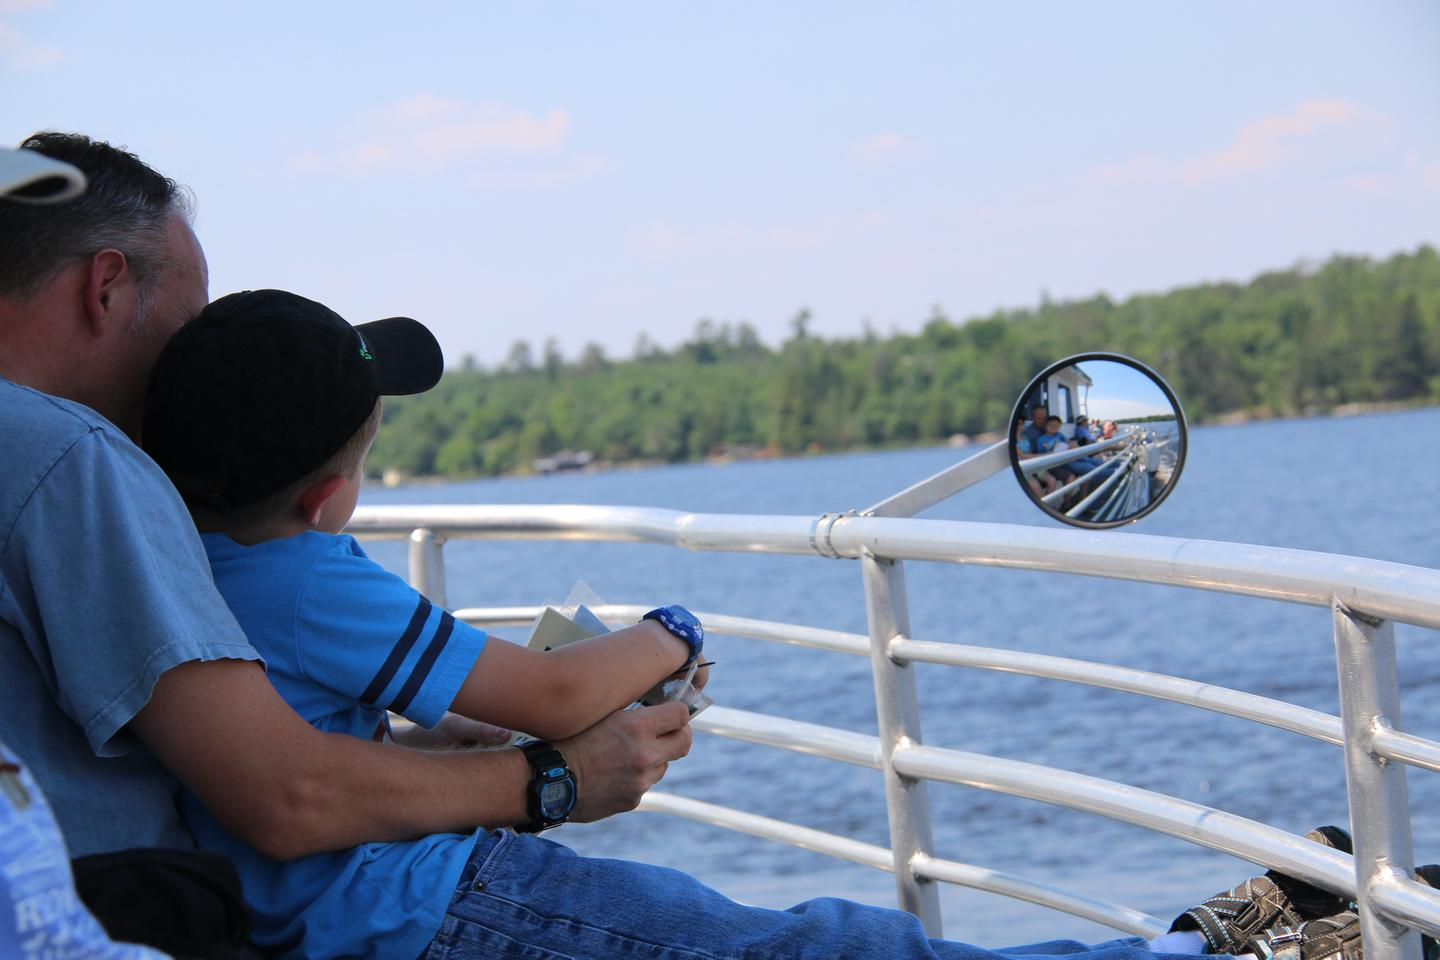 Visitors taking in the view from the Voyageur Tour BoatFather and son enjoying the view from atop the Voyageur tour boat